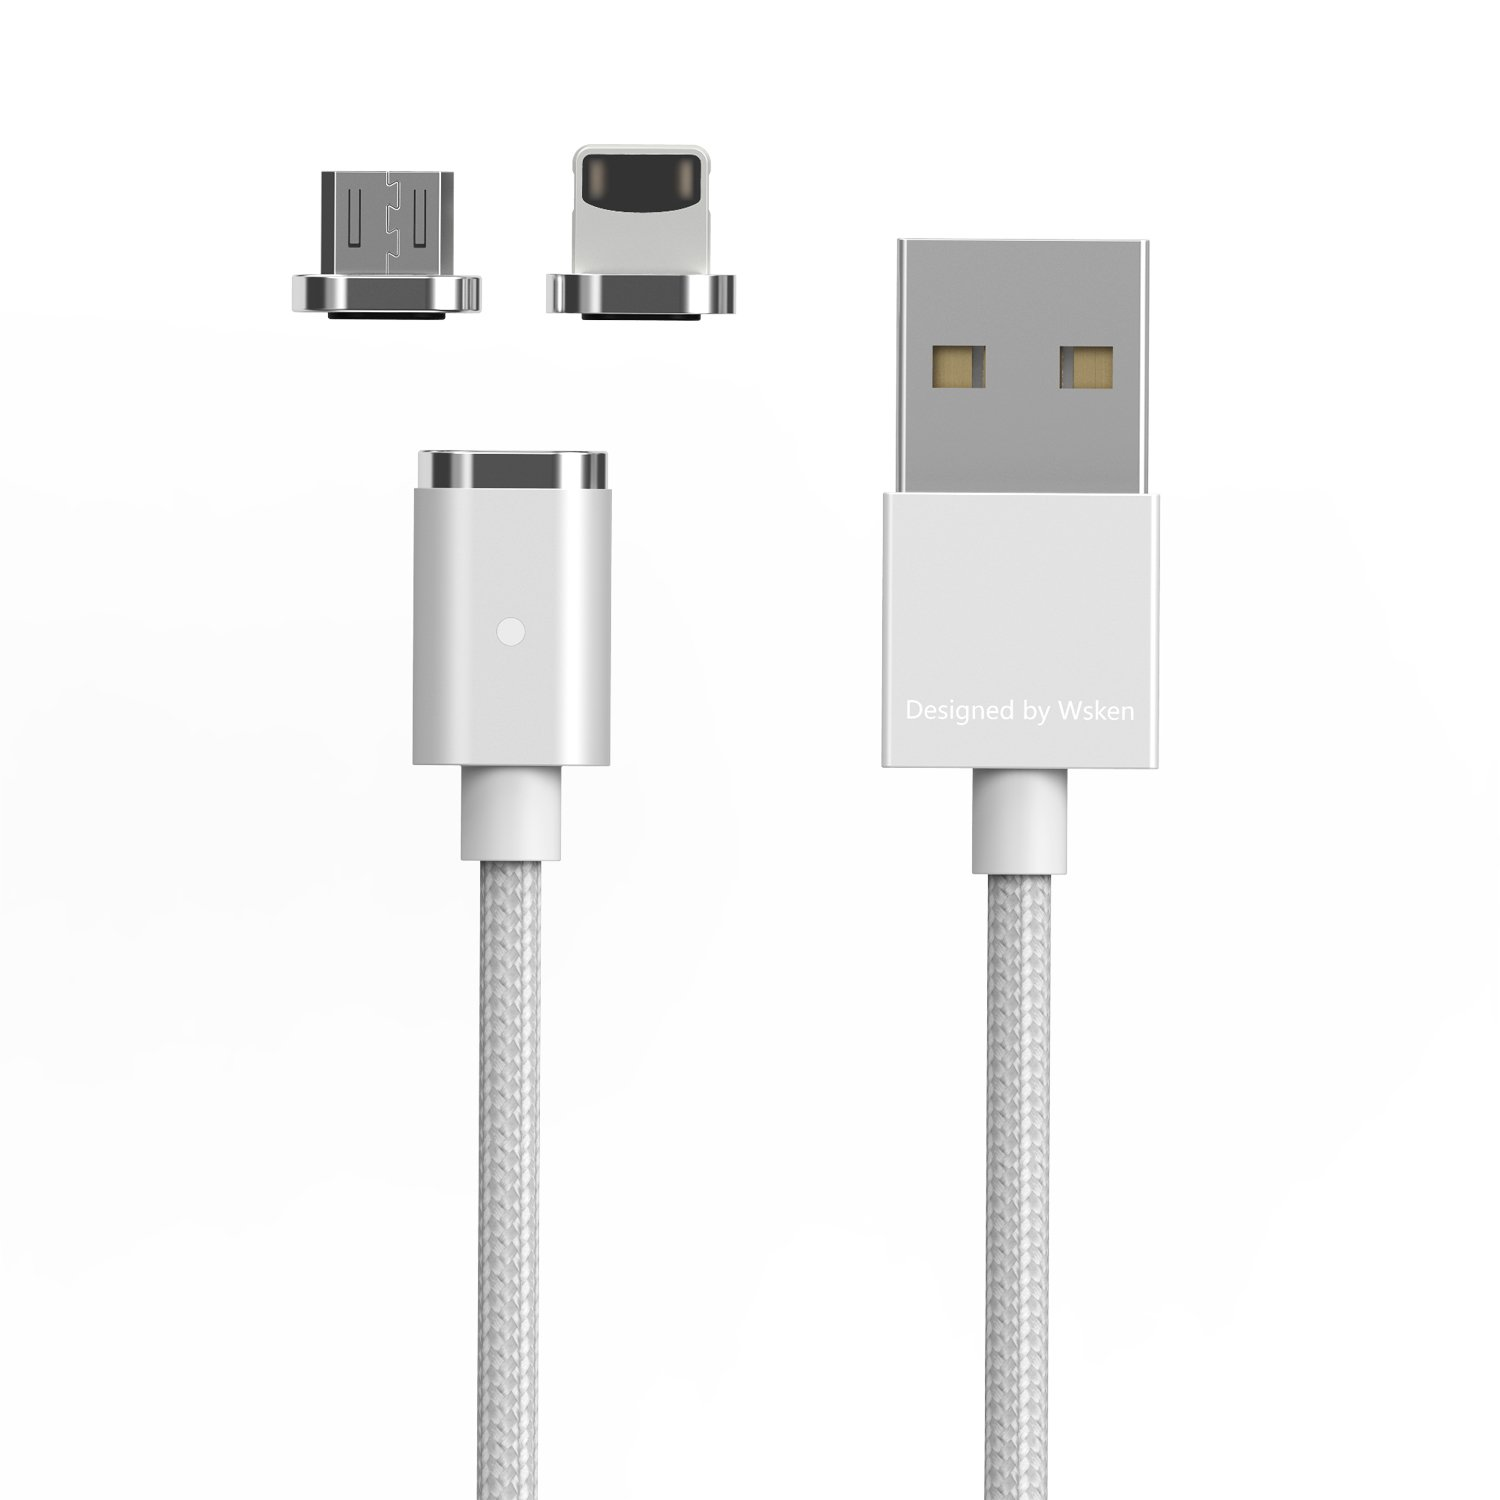 357ac77bac6a76 USB Magnetic Fast Charging Cable – Wsken Mini2 6.56ft Micro USB Charge  Cable Data Sync Transmission Cord with LED Indicator Display for Android  Smart Phones ...